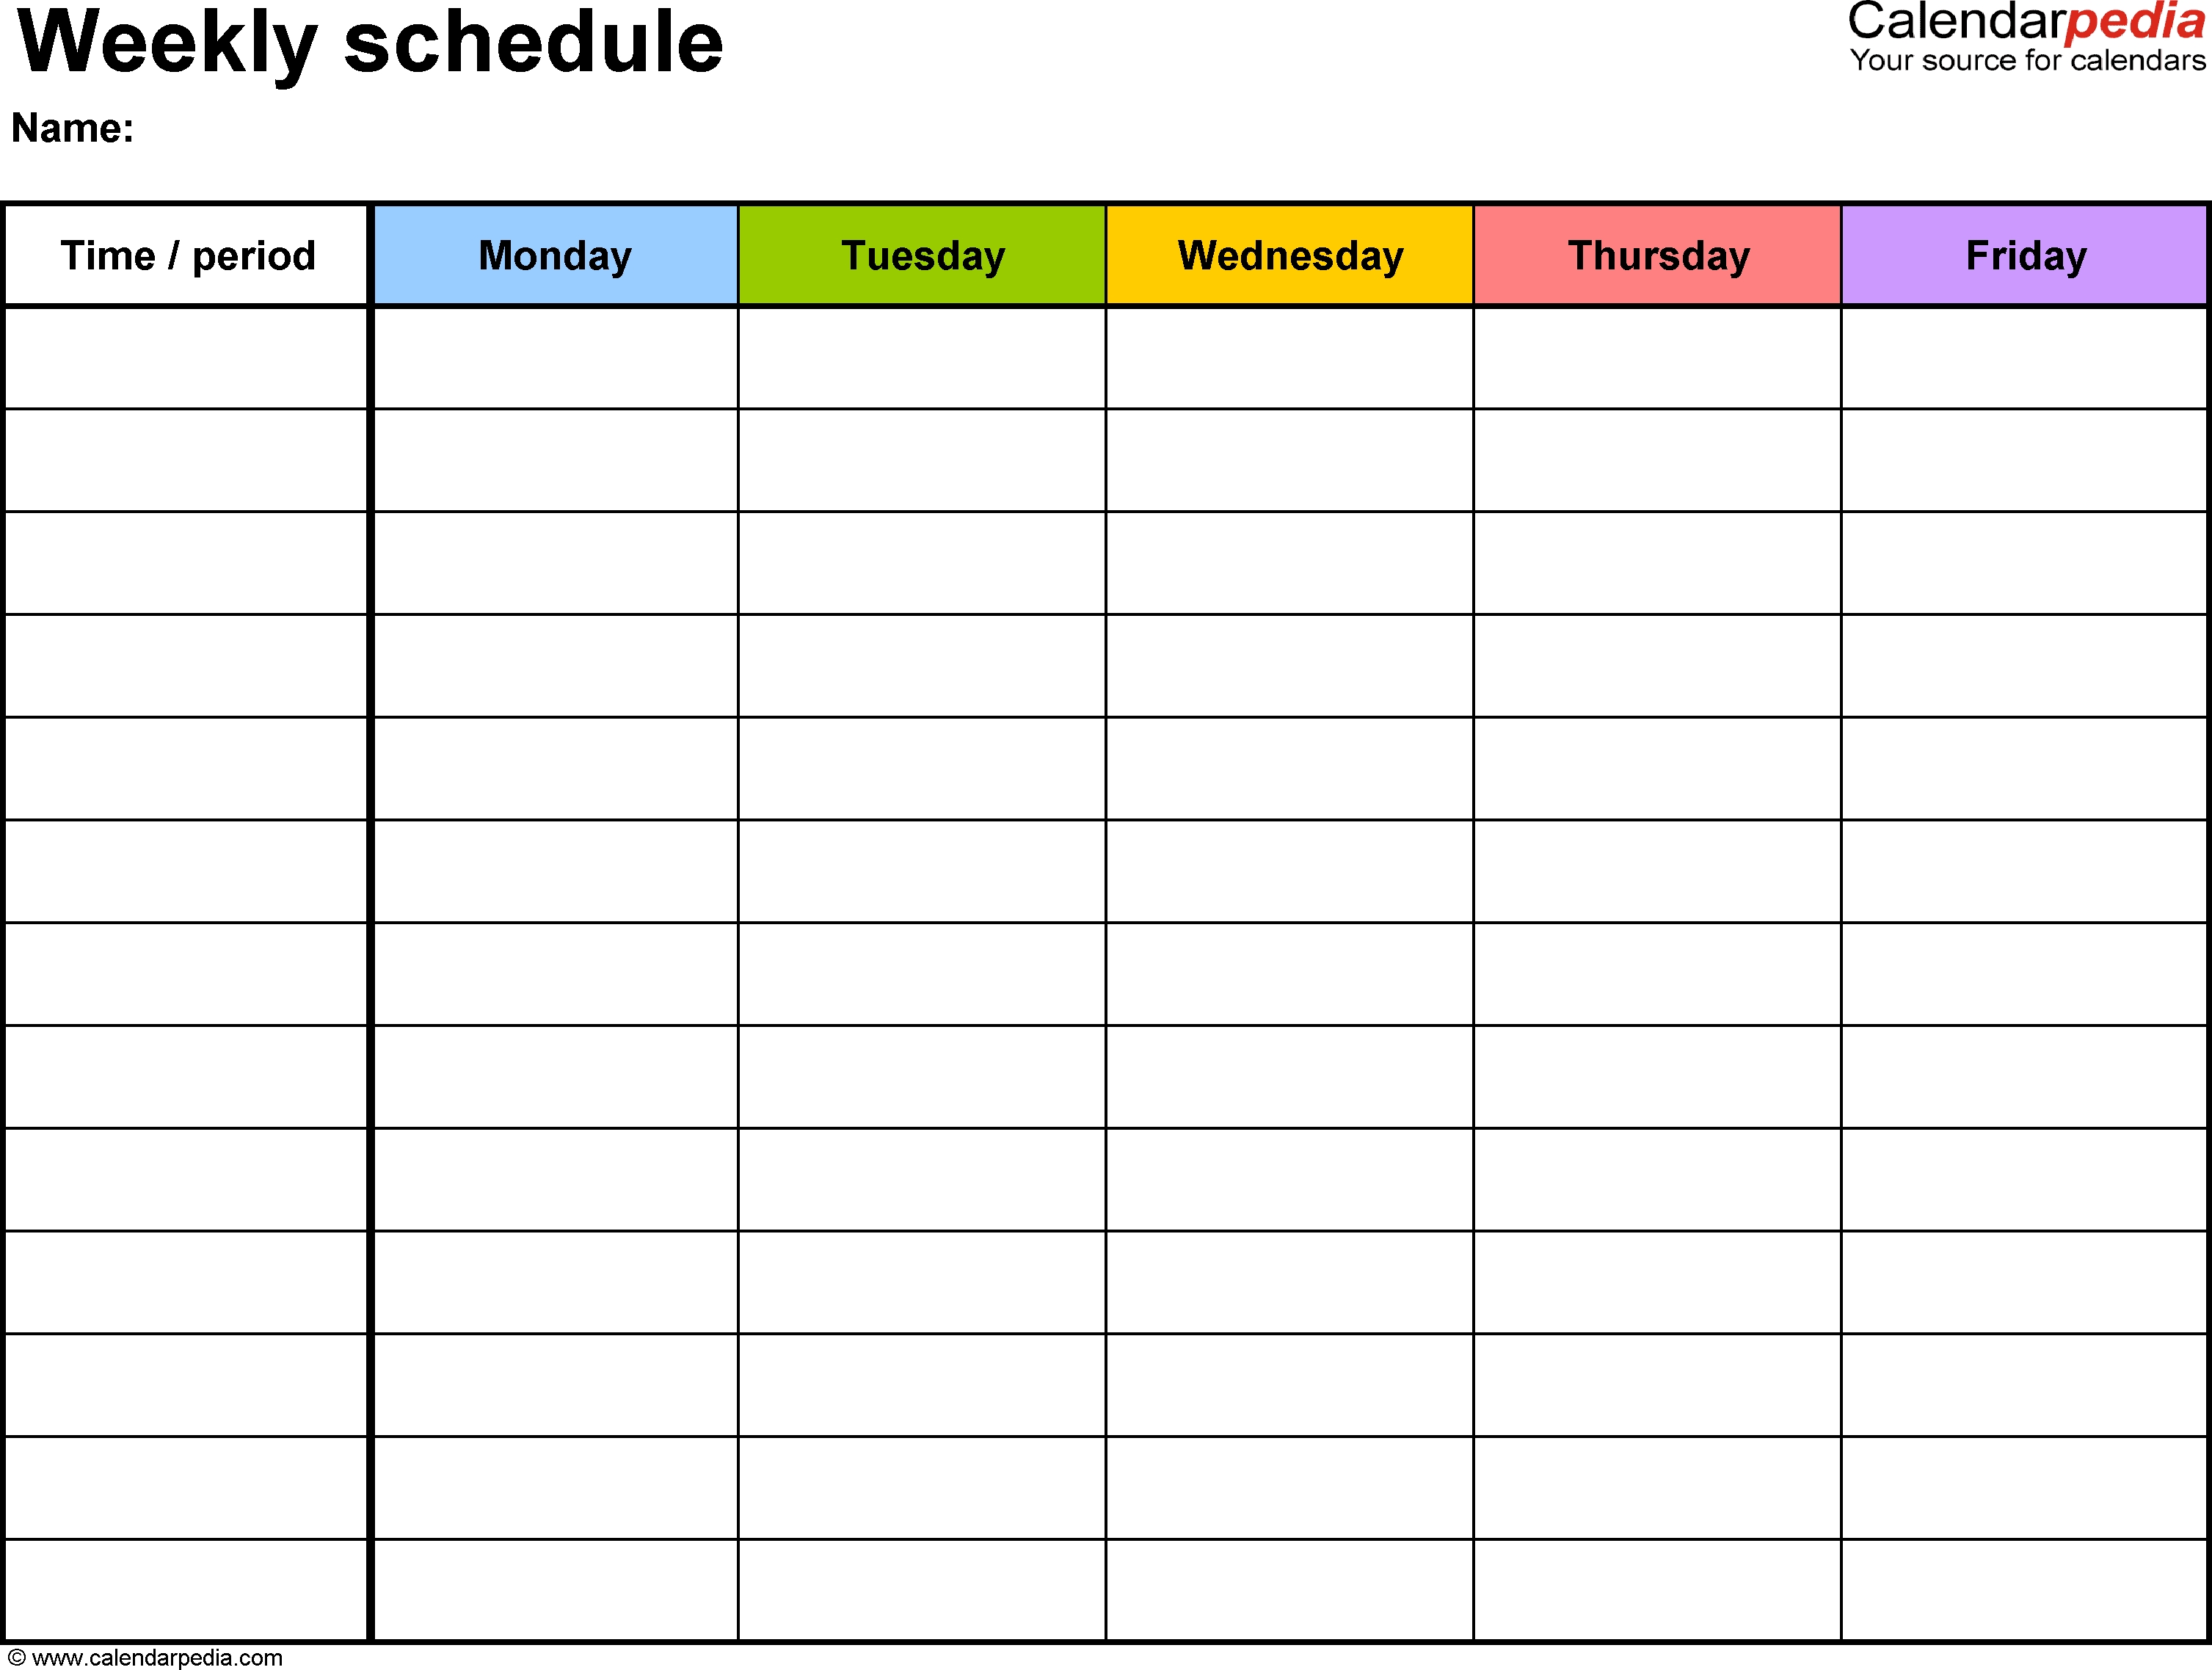 Free Weekly Schedule Templates For Excel - 18 Templates for Free Printable Weekly Schedule Page